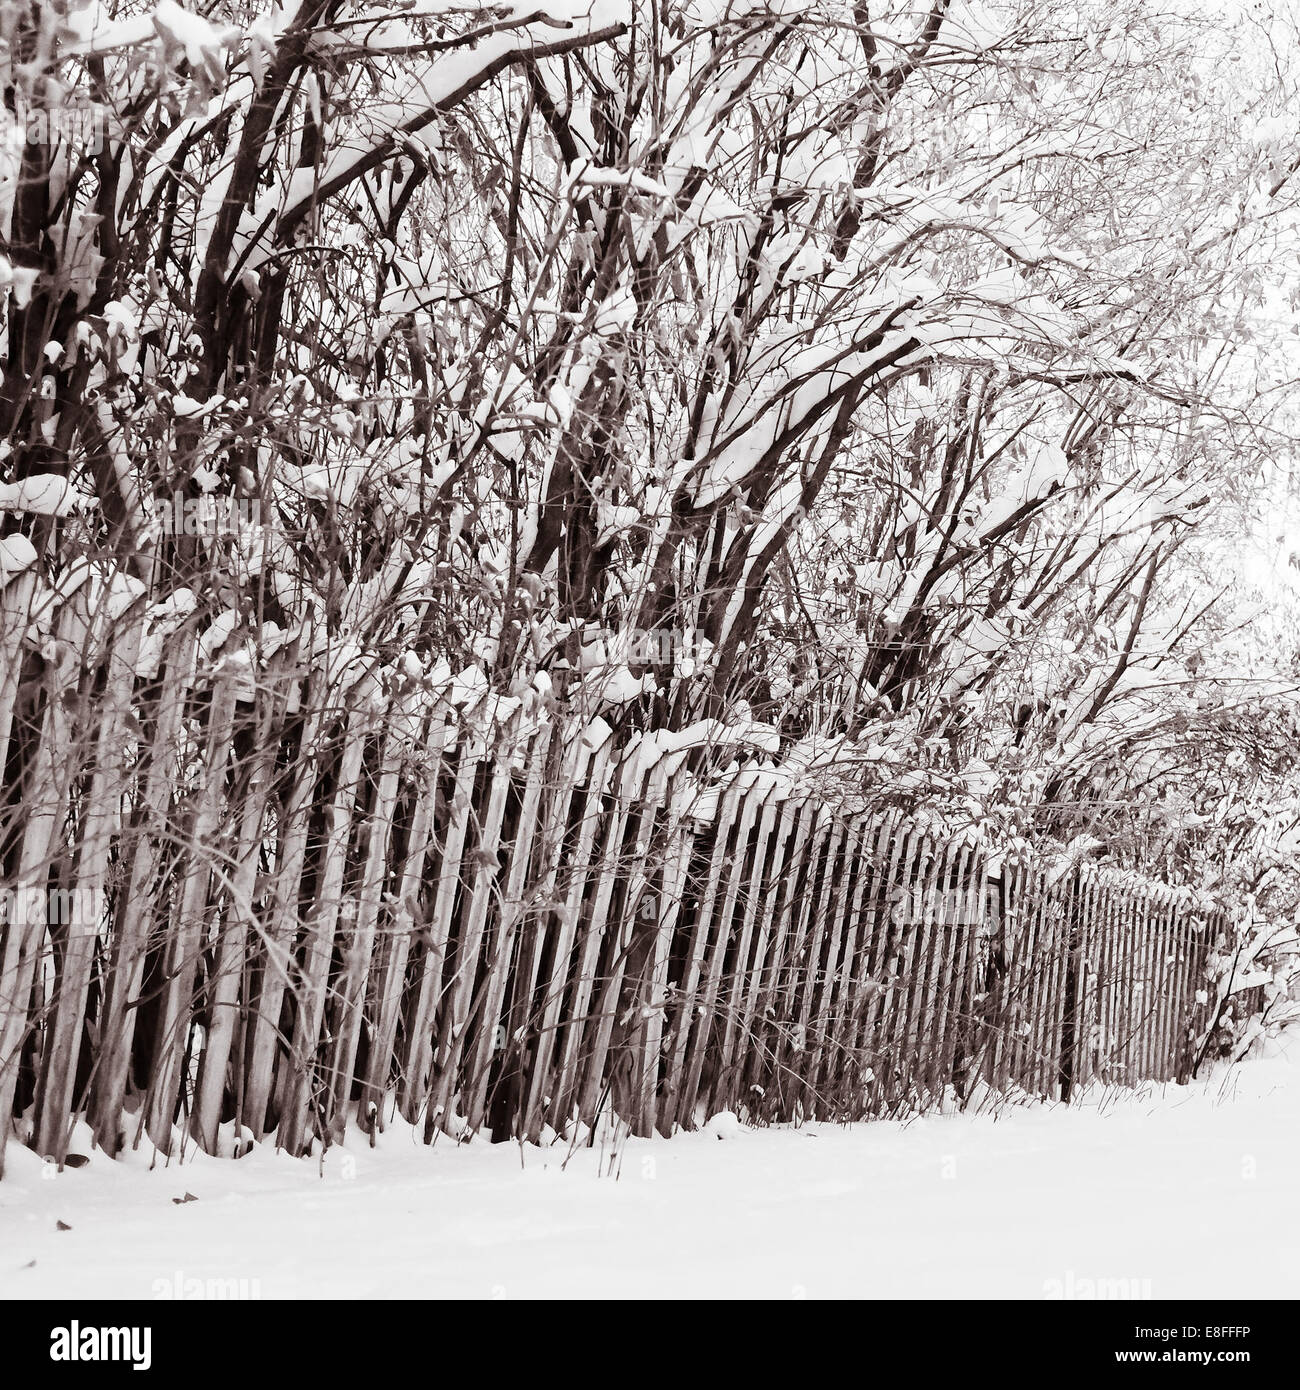 Wooden fence and trees covered with snow - Stock Image